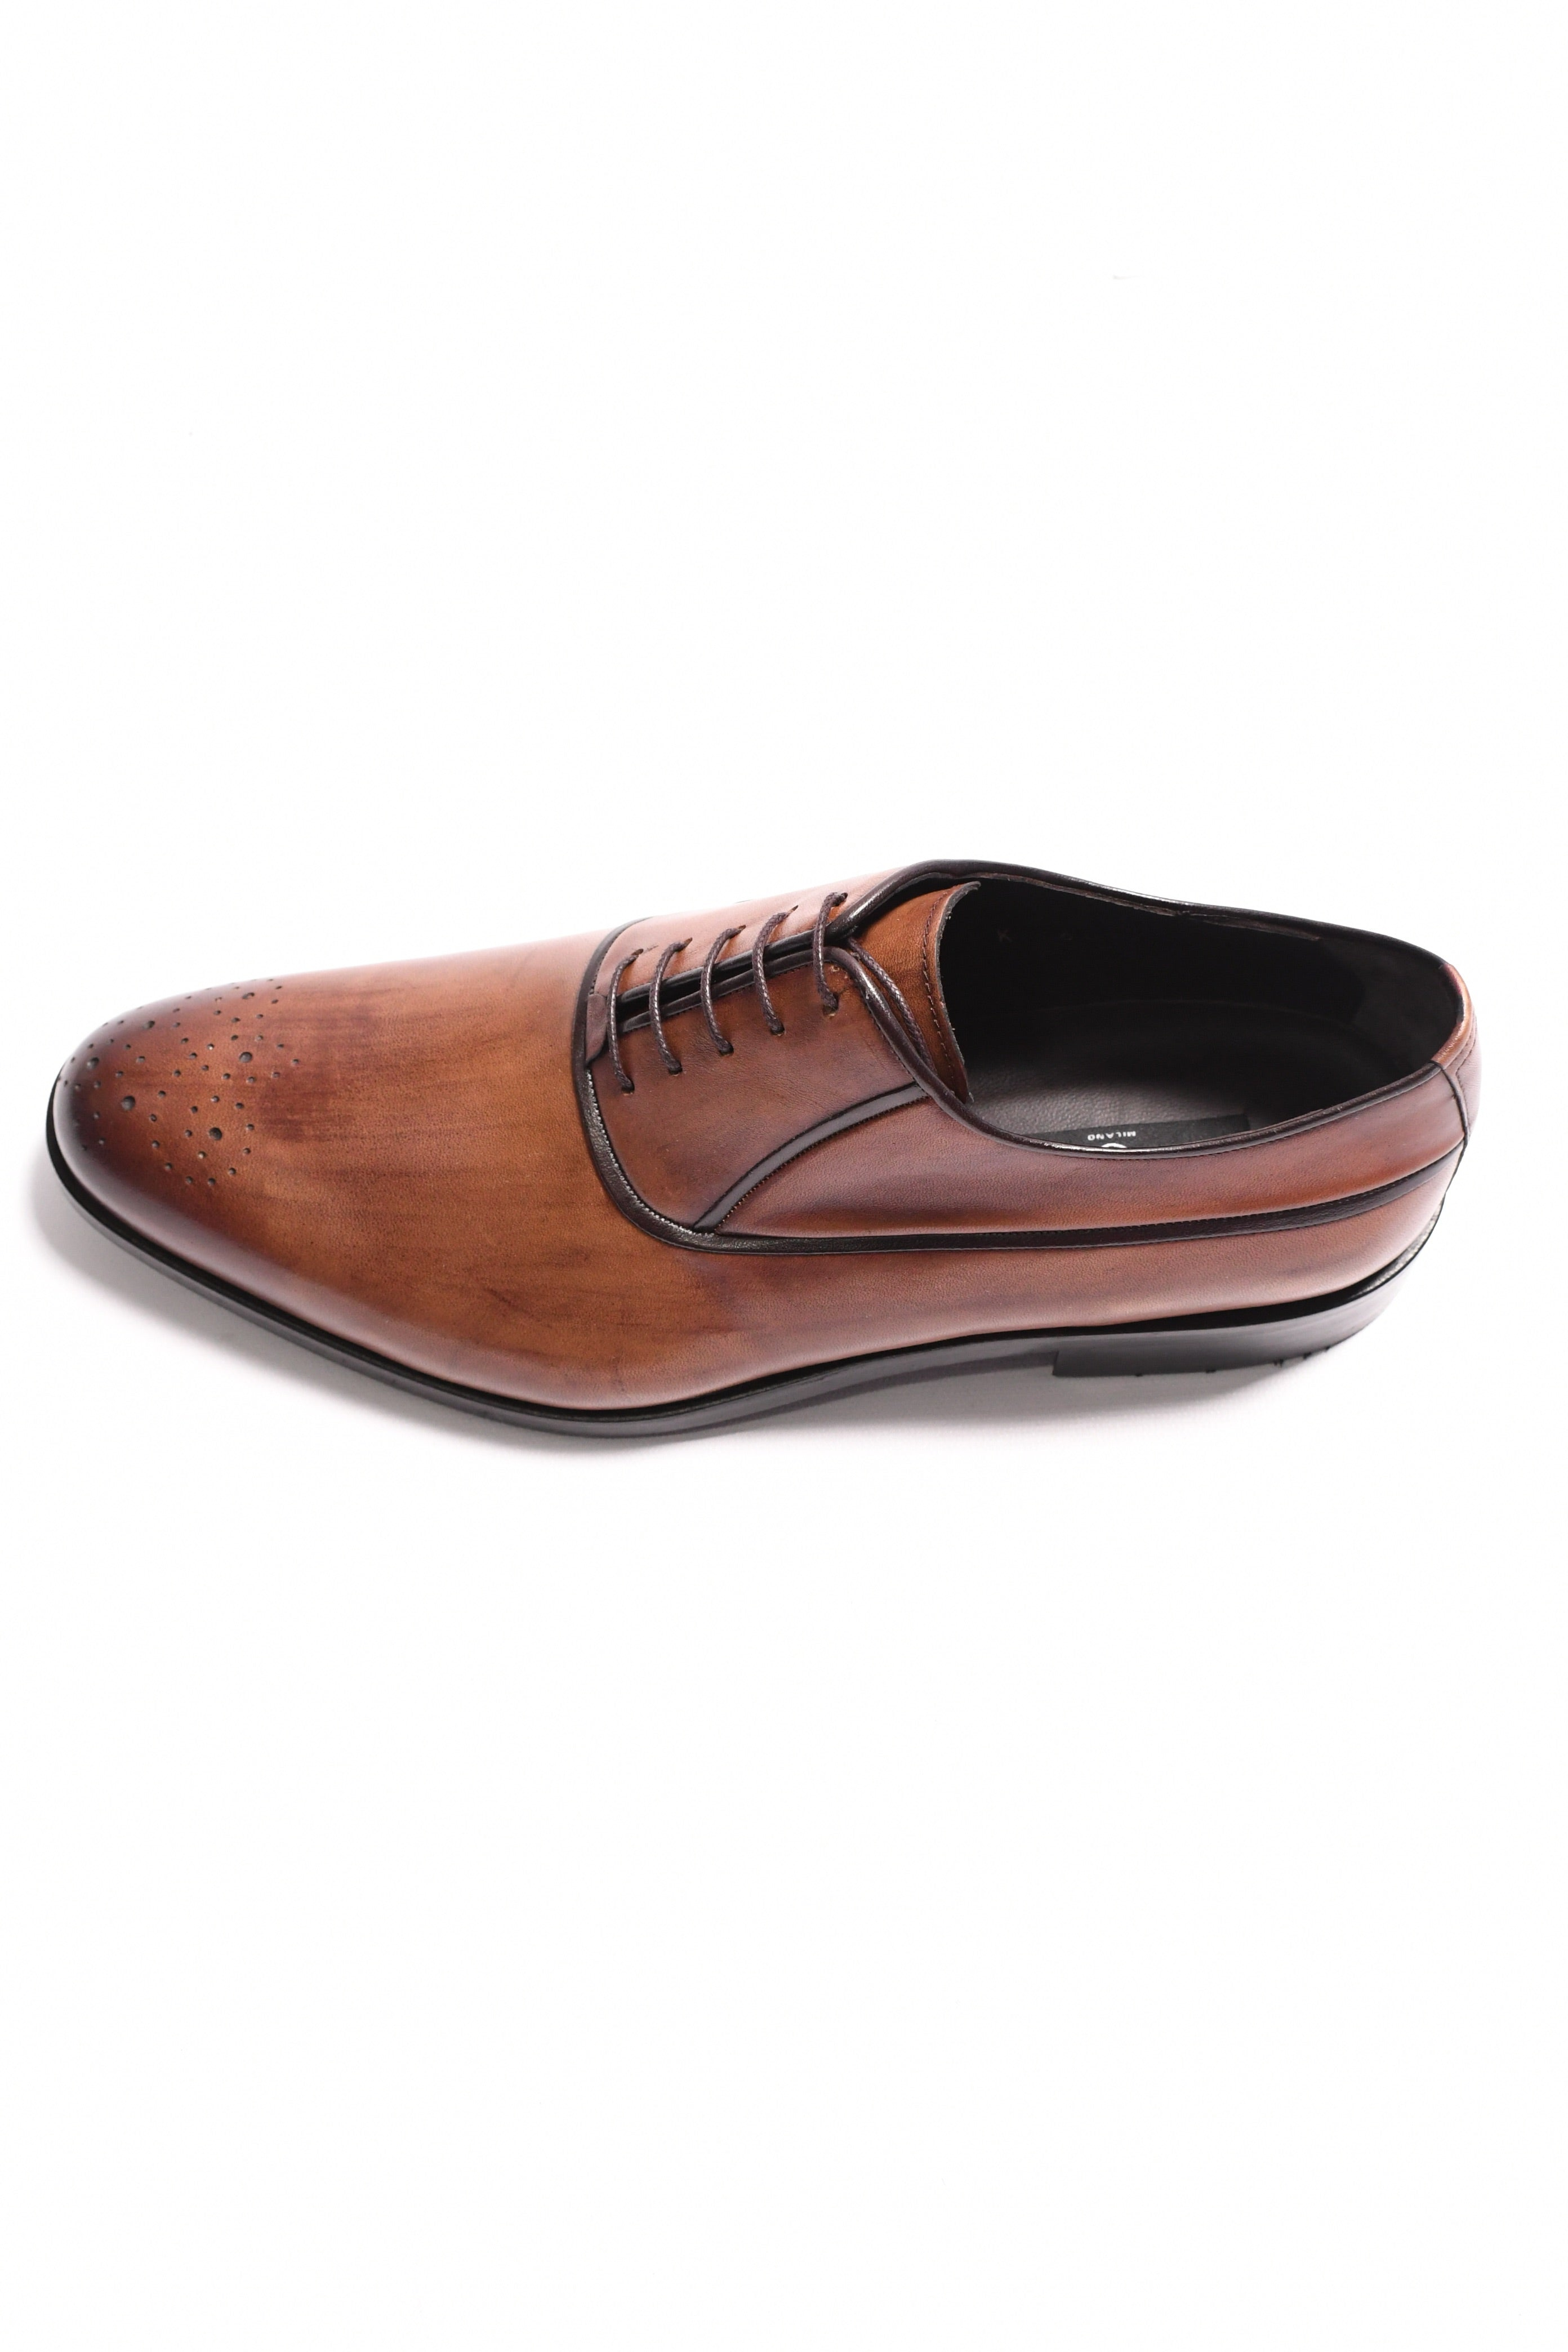 COGNAC BROWN CG00181309